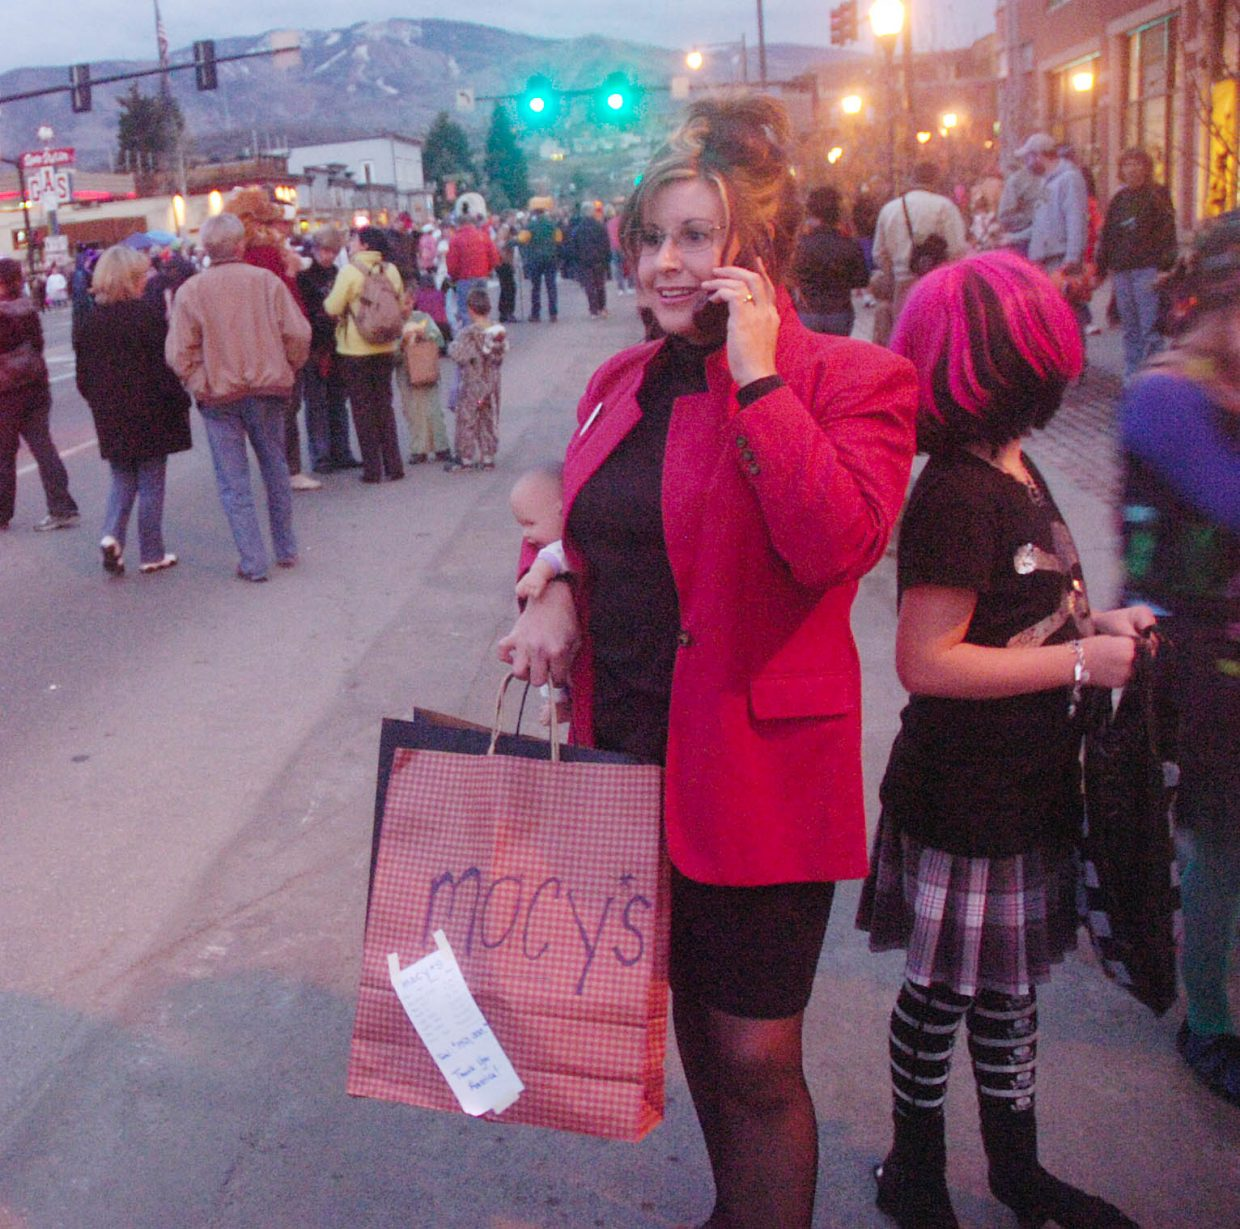 Stagecoach resident Jennifer Johnson, dressed as Sarah Palin, talks on her cell phone next to her 9-year-old daughter Emma on Friday night during the Downtown Halloween Stroll.